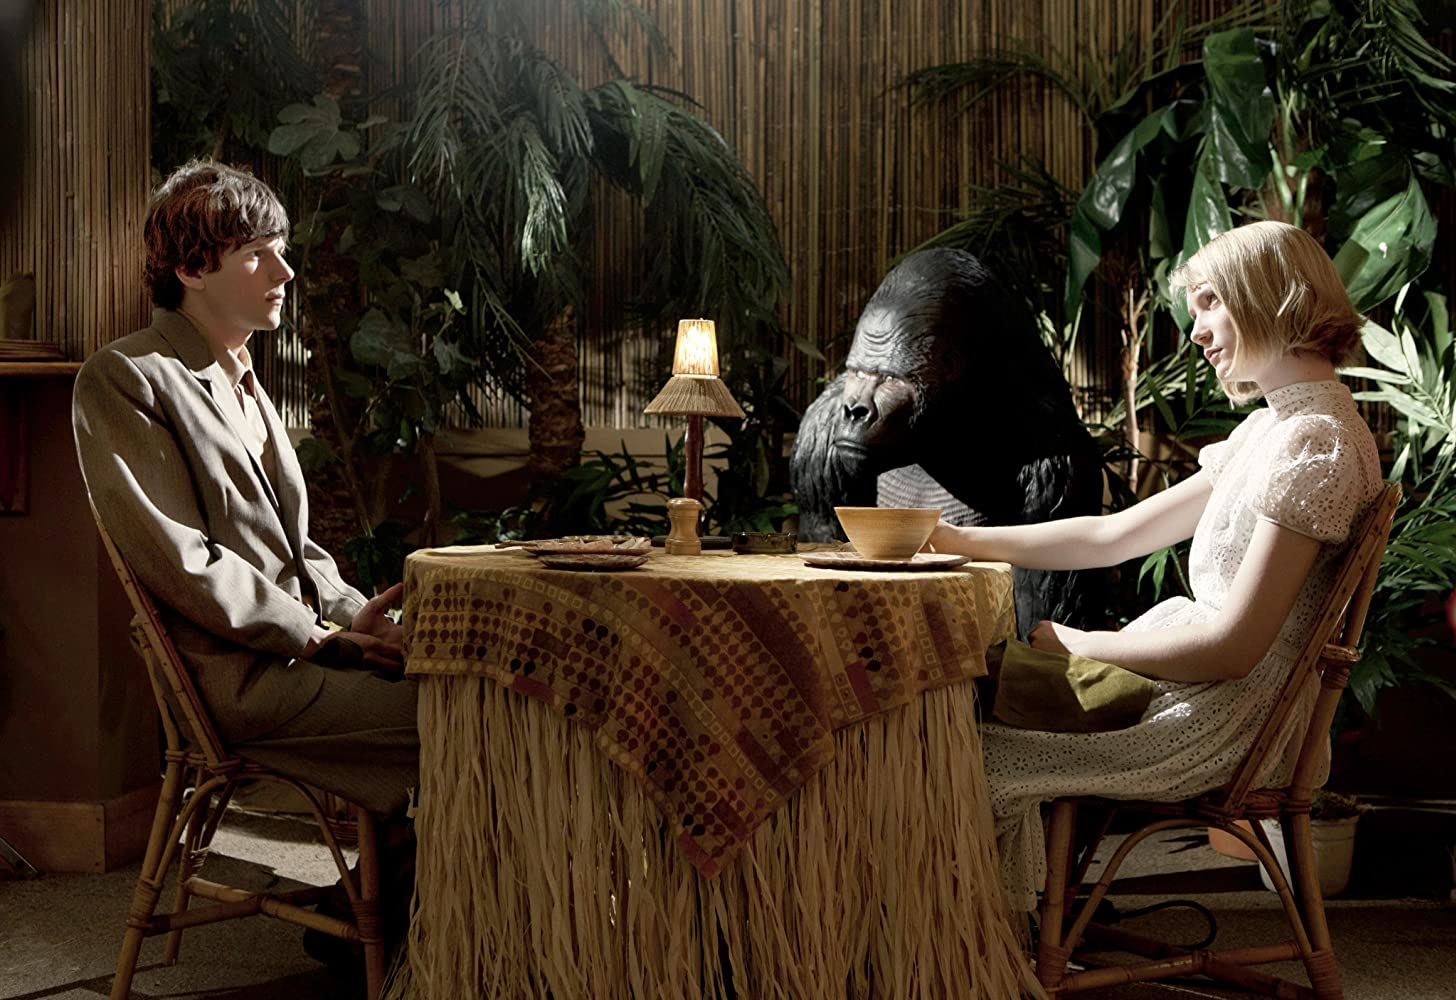 Jesse Eisenberg and Mia Wasikowska in The Double (2013)